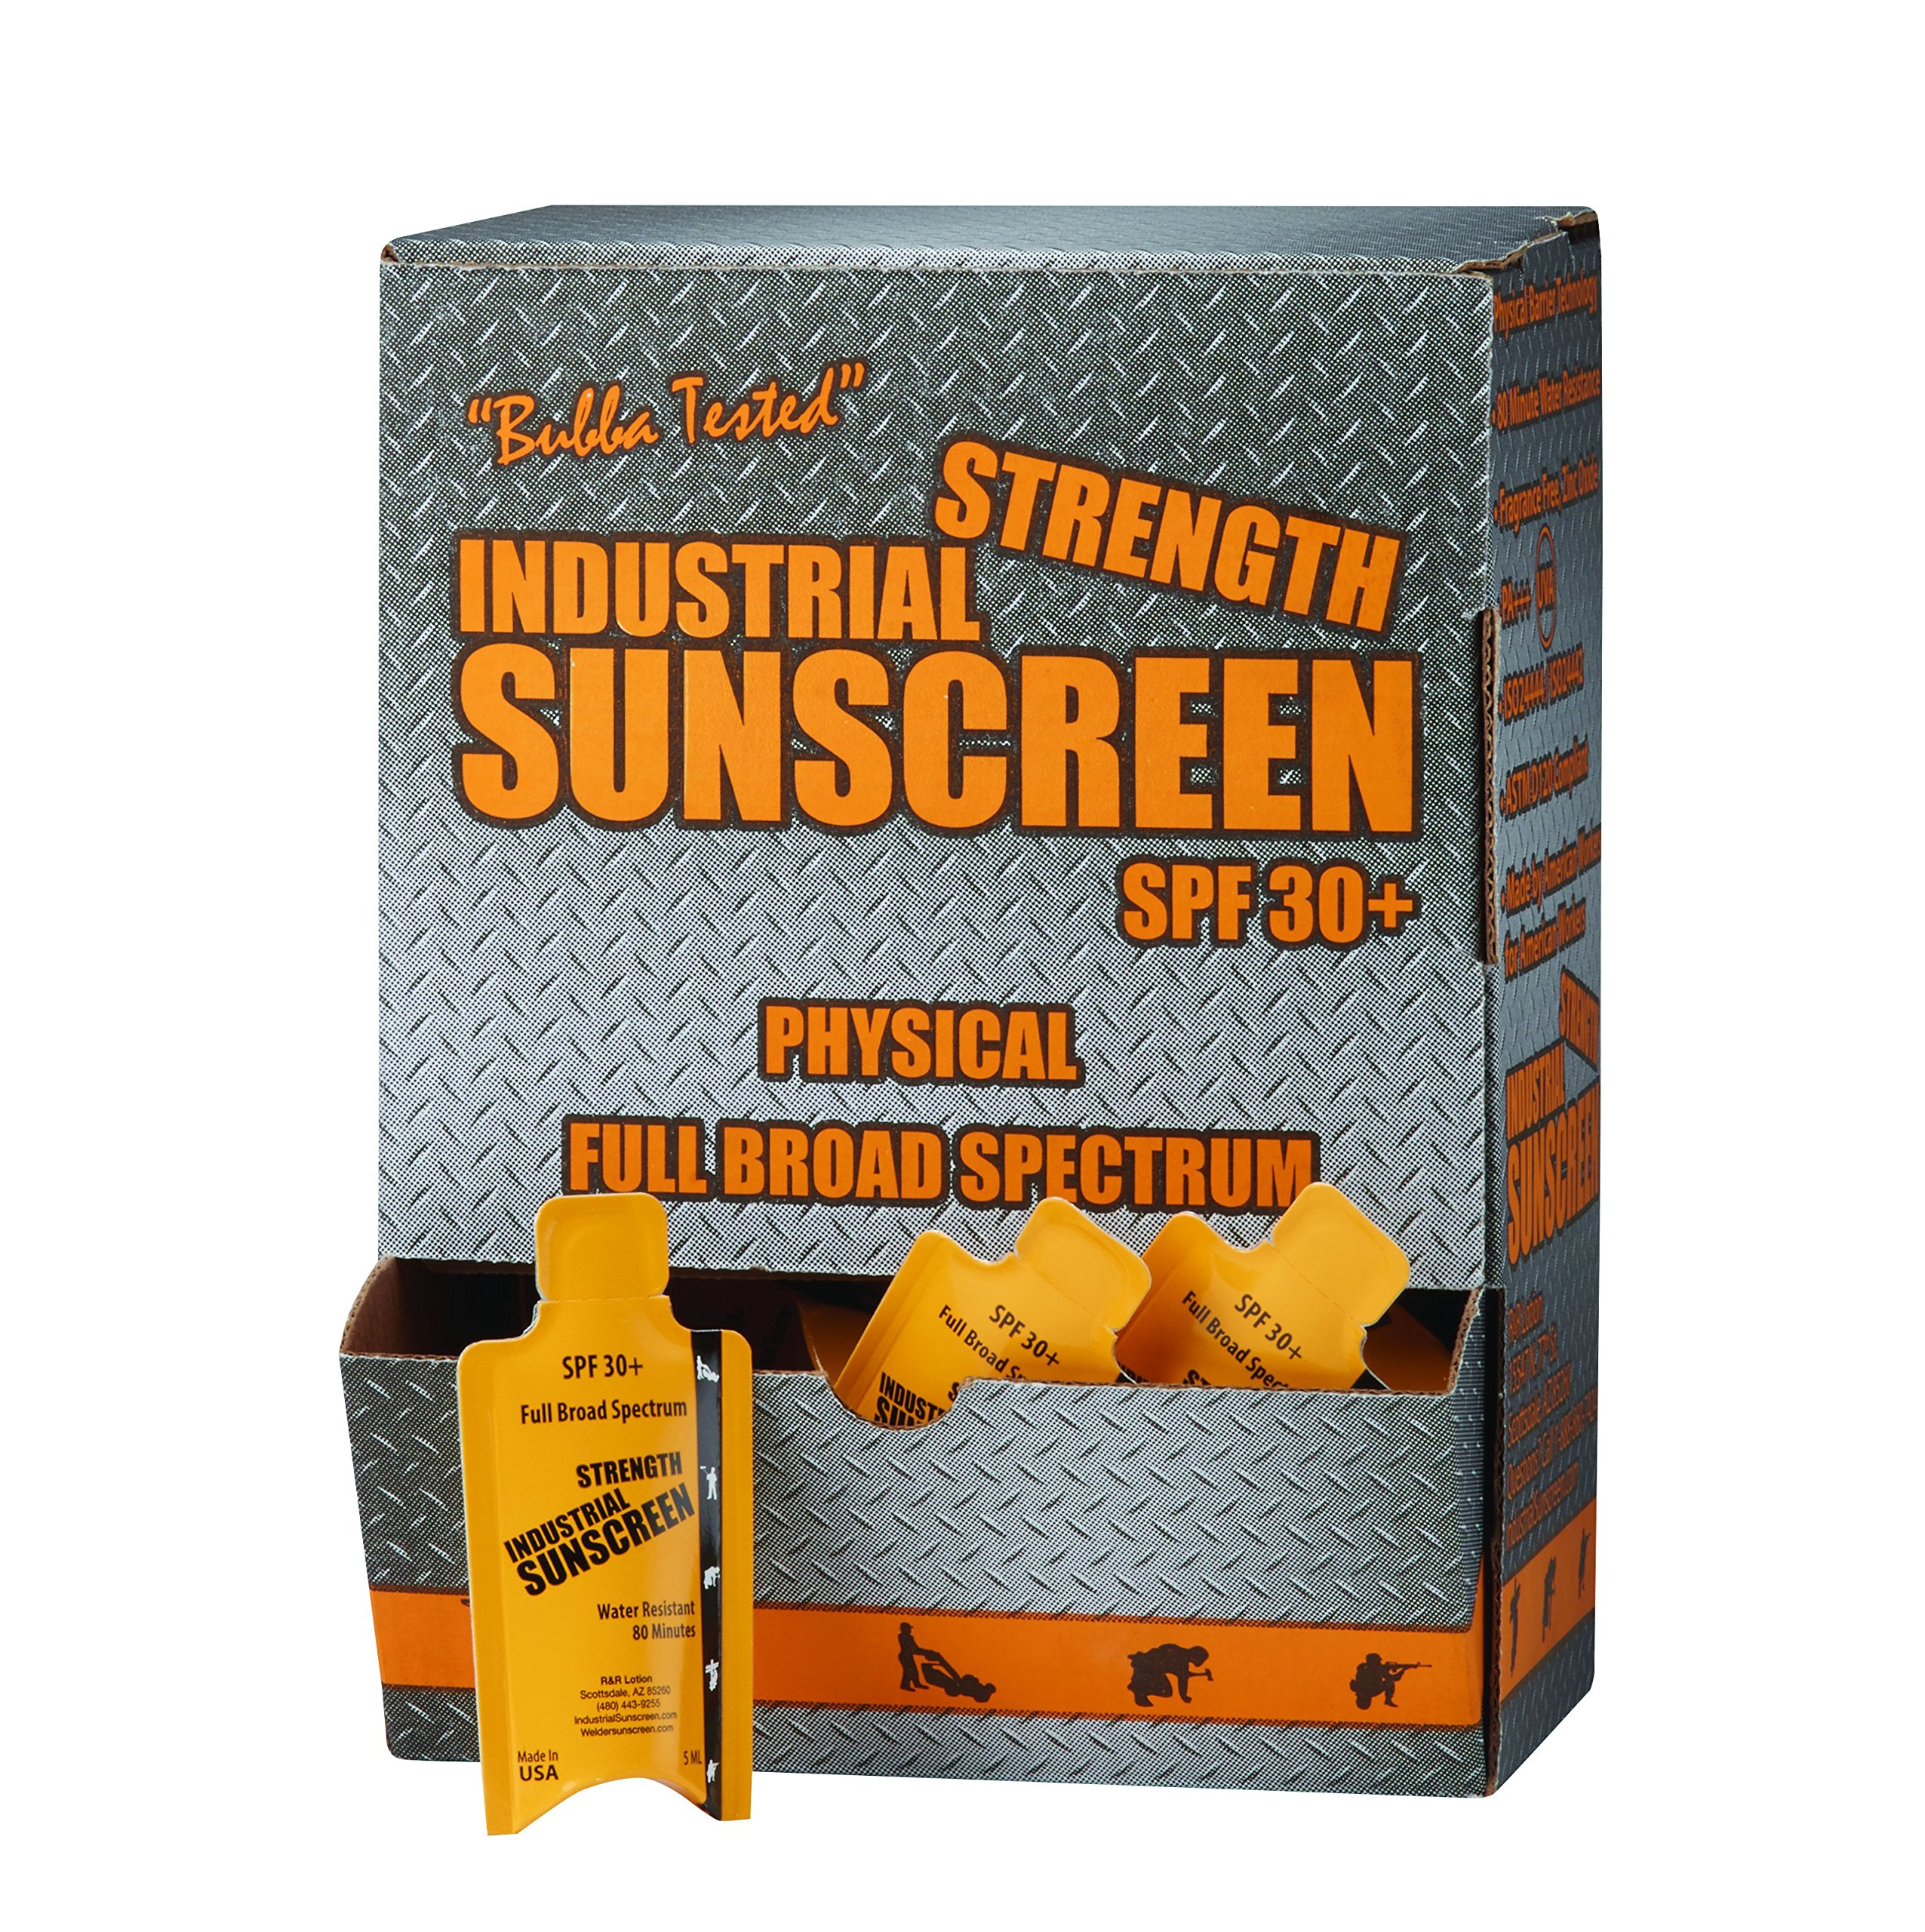 R&R Lotion ICSSP-100-30+ Industrial Sunscreen Packet, 3.5'' Height, 5 fl.oz. Capacity, 5 mL